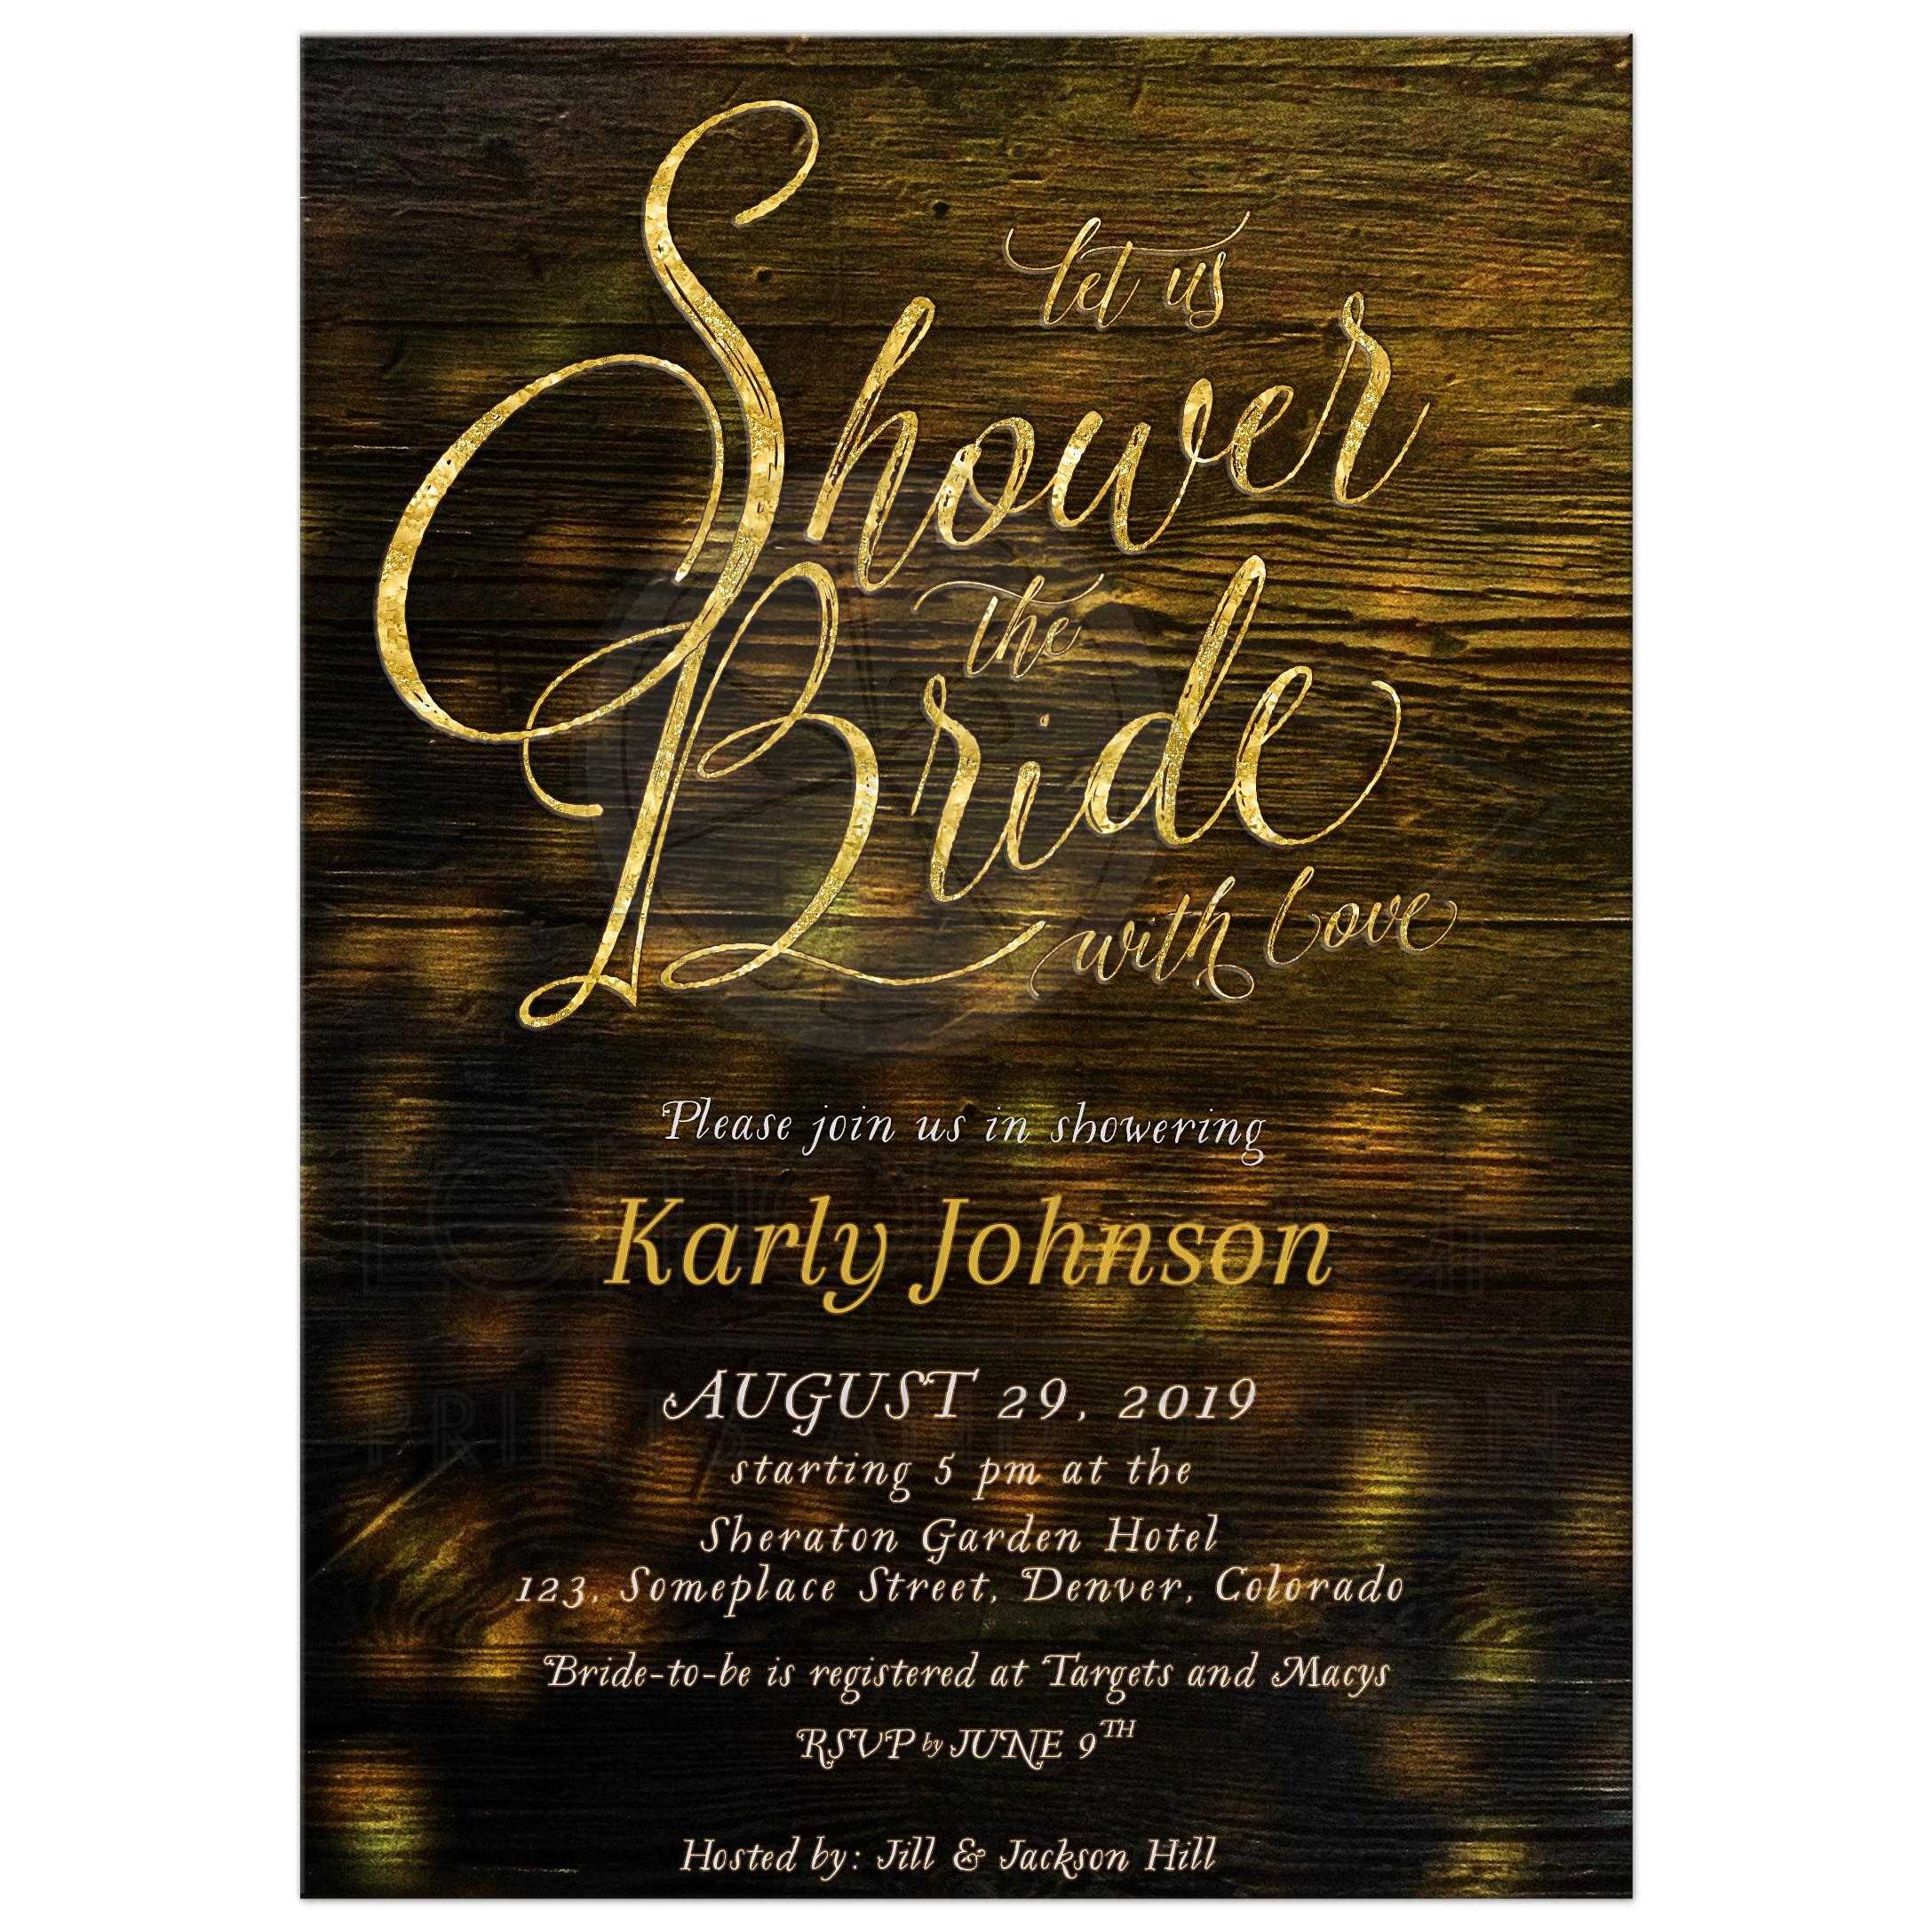 Rustic Lights Bridal Shower The Bride Party Invitation ...